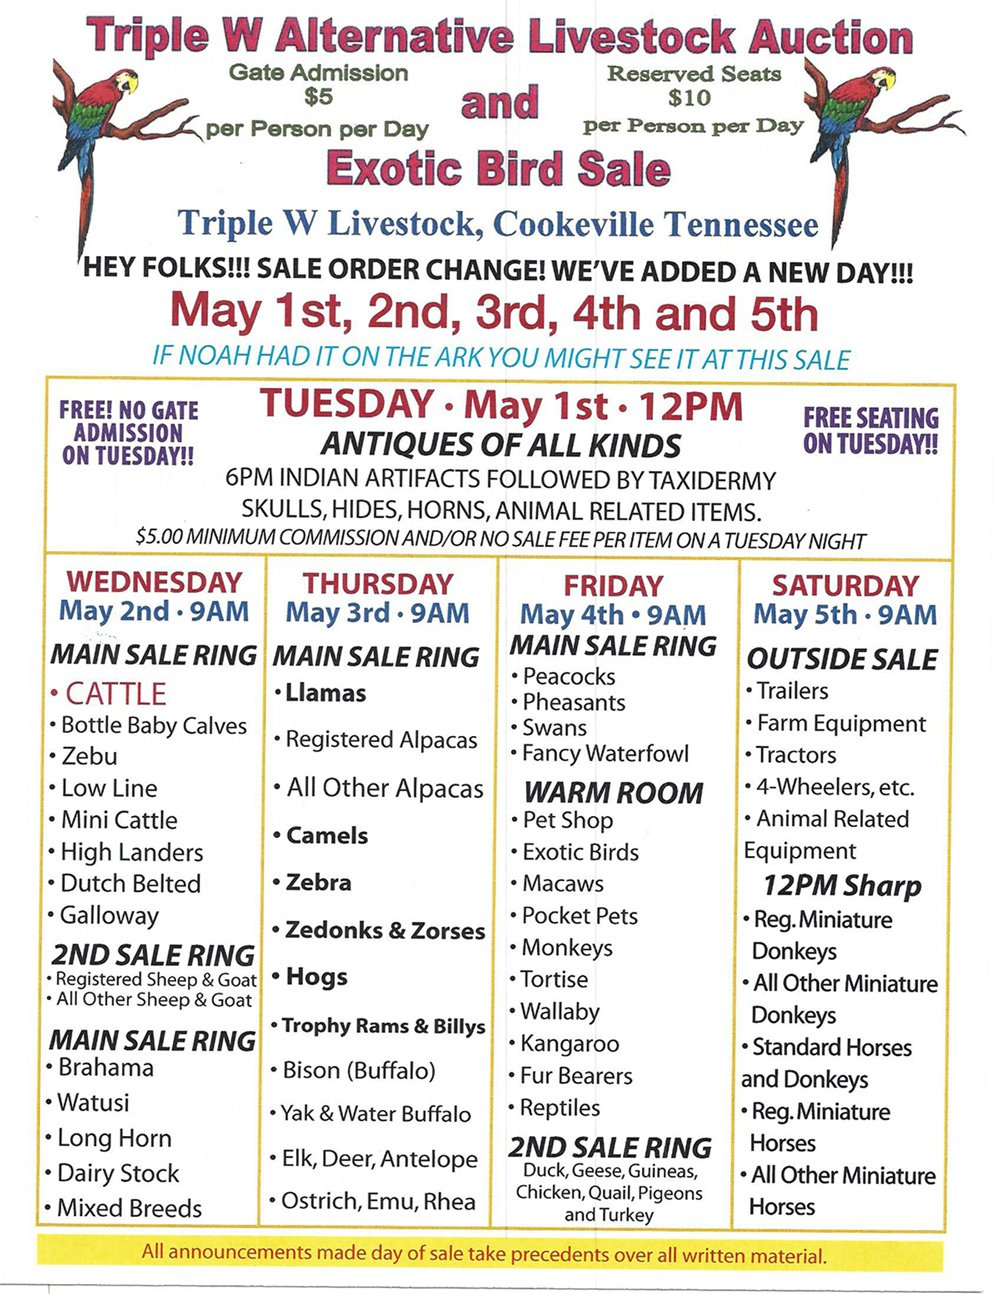 Exotic Animal Auction | Cookeville, TN | Triple W Livestock Auction